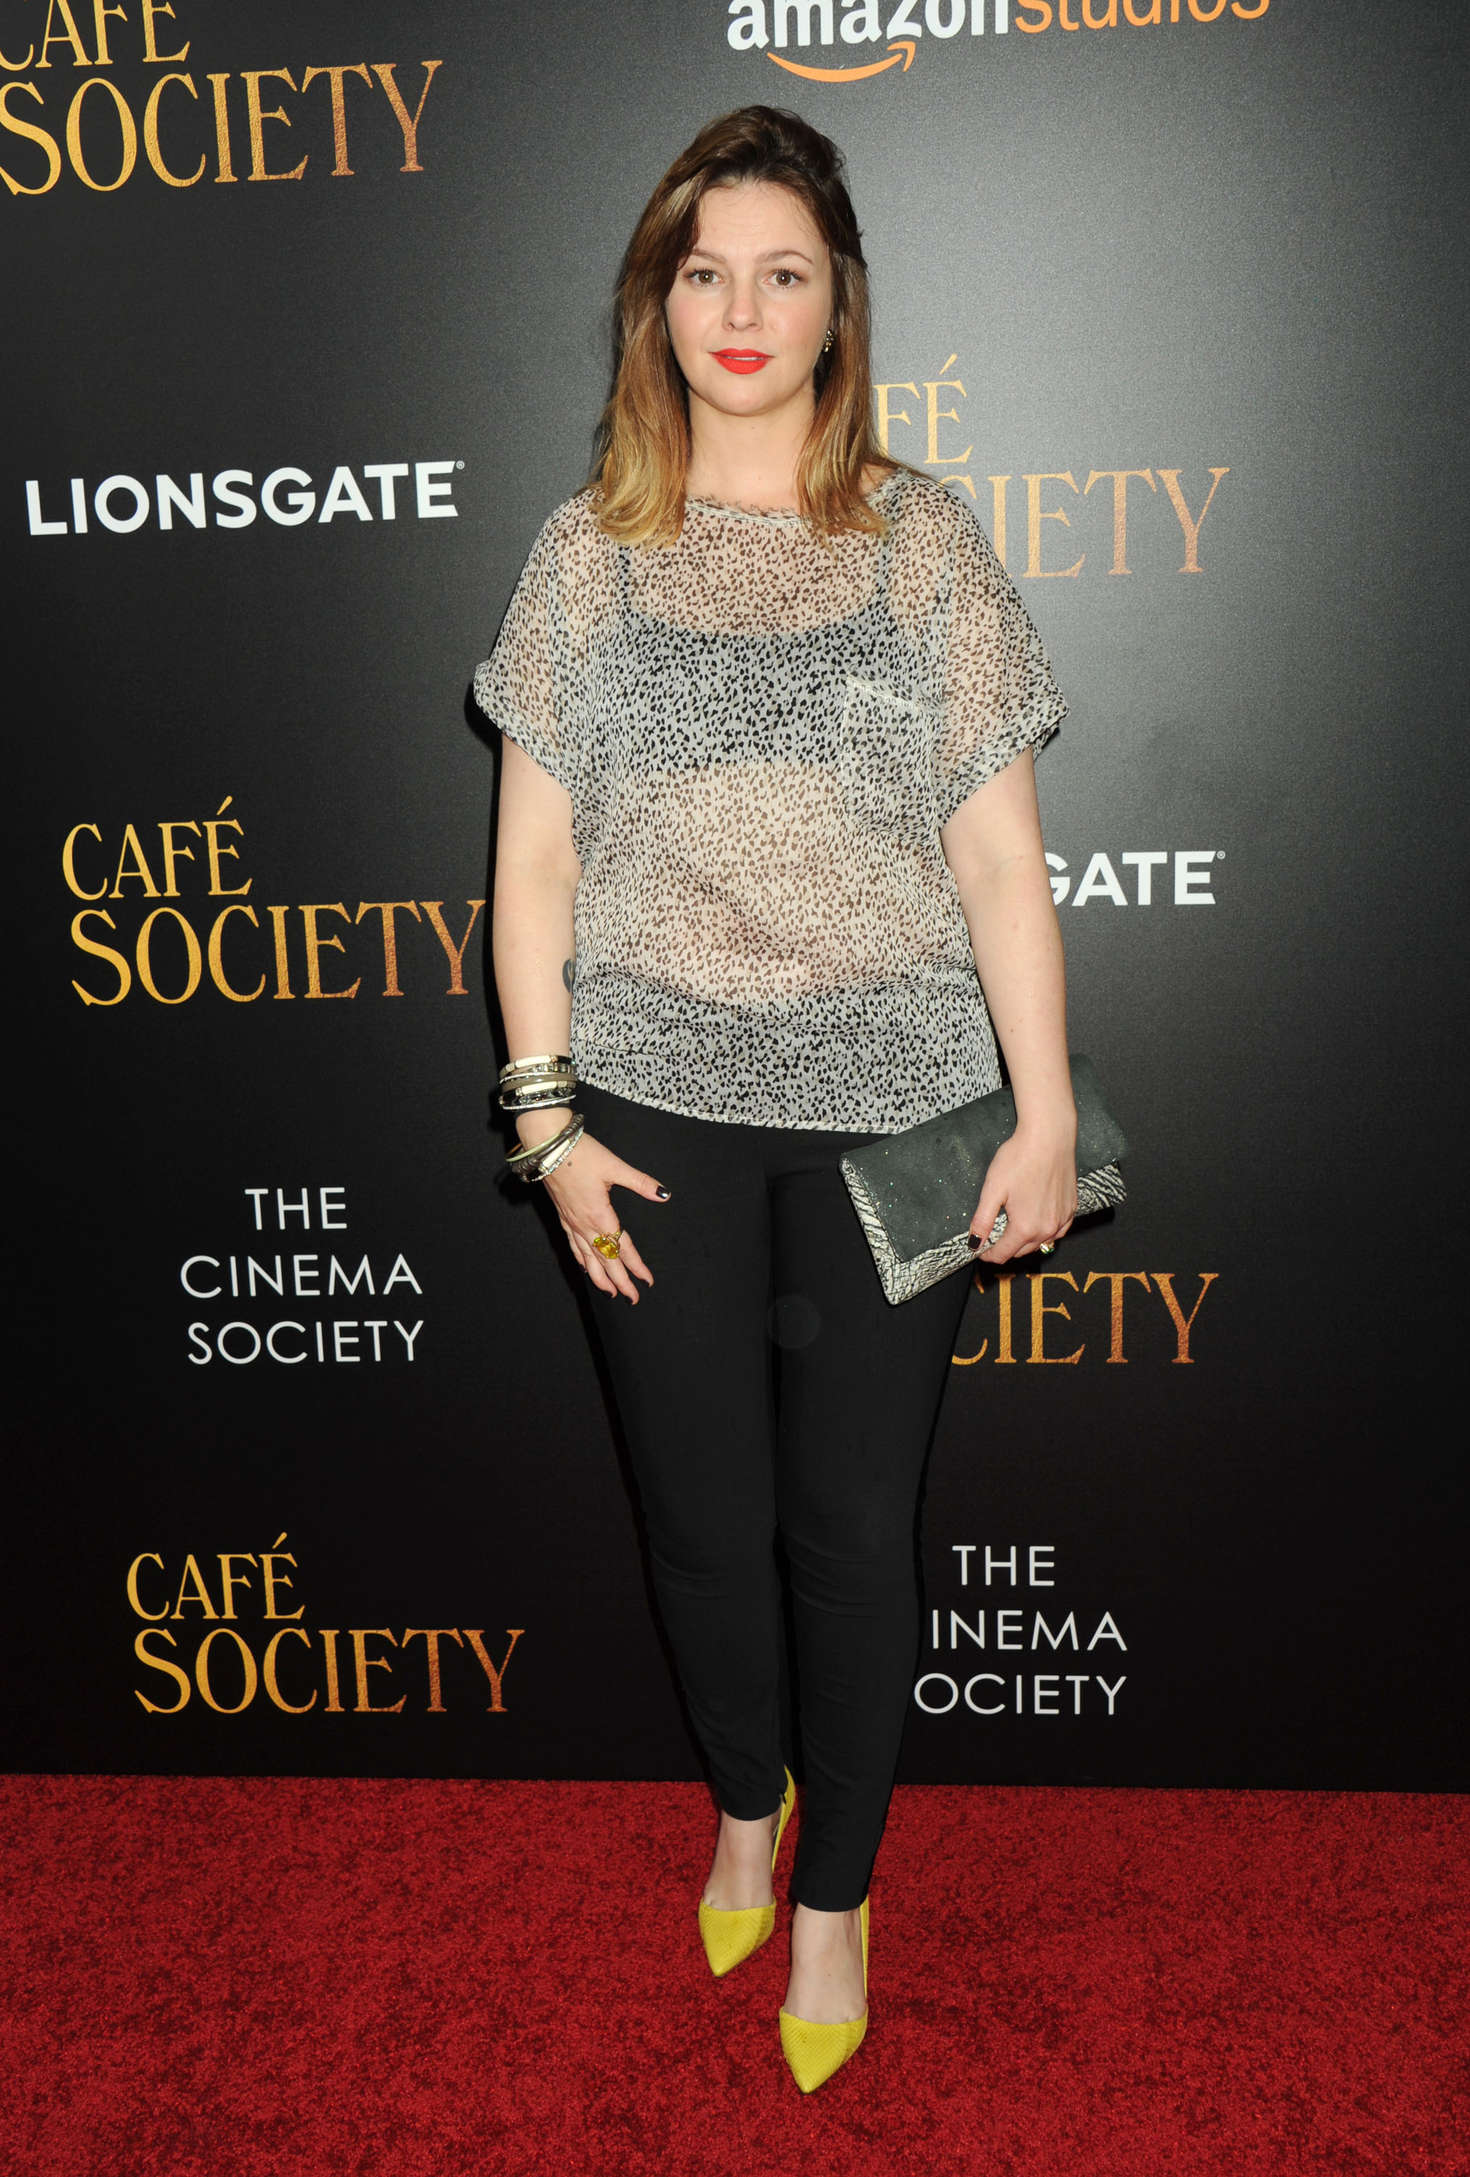 Amber Tamblyn - 'Cafe Society' Premiere in New York City